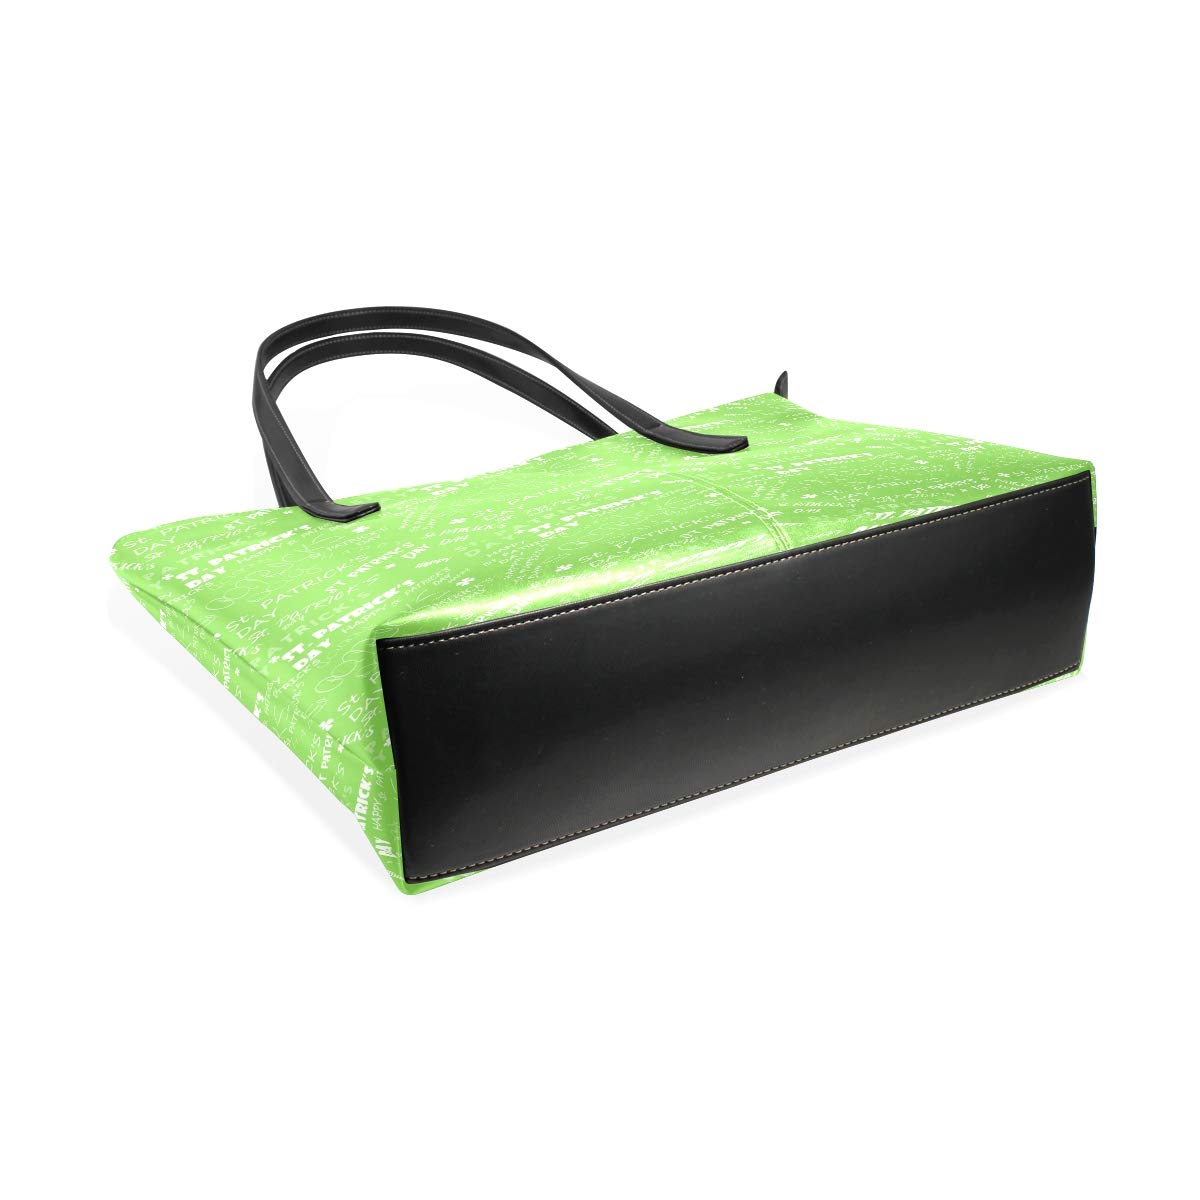 Amazon.com: Moda St Patricks Decoración del día Bolsos ...